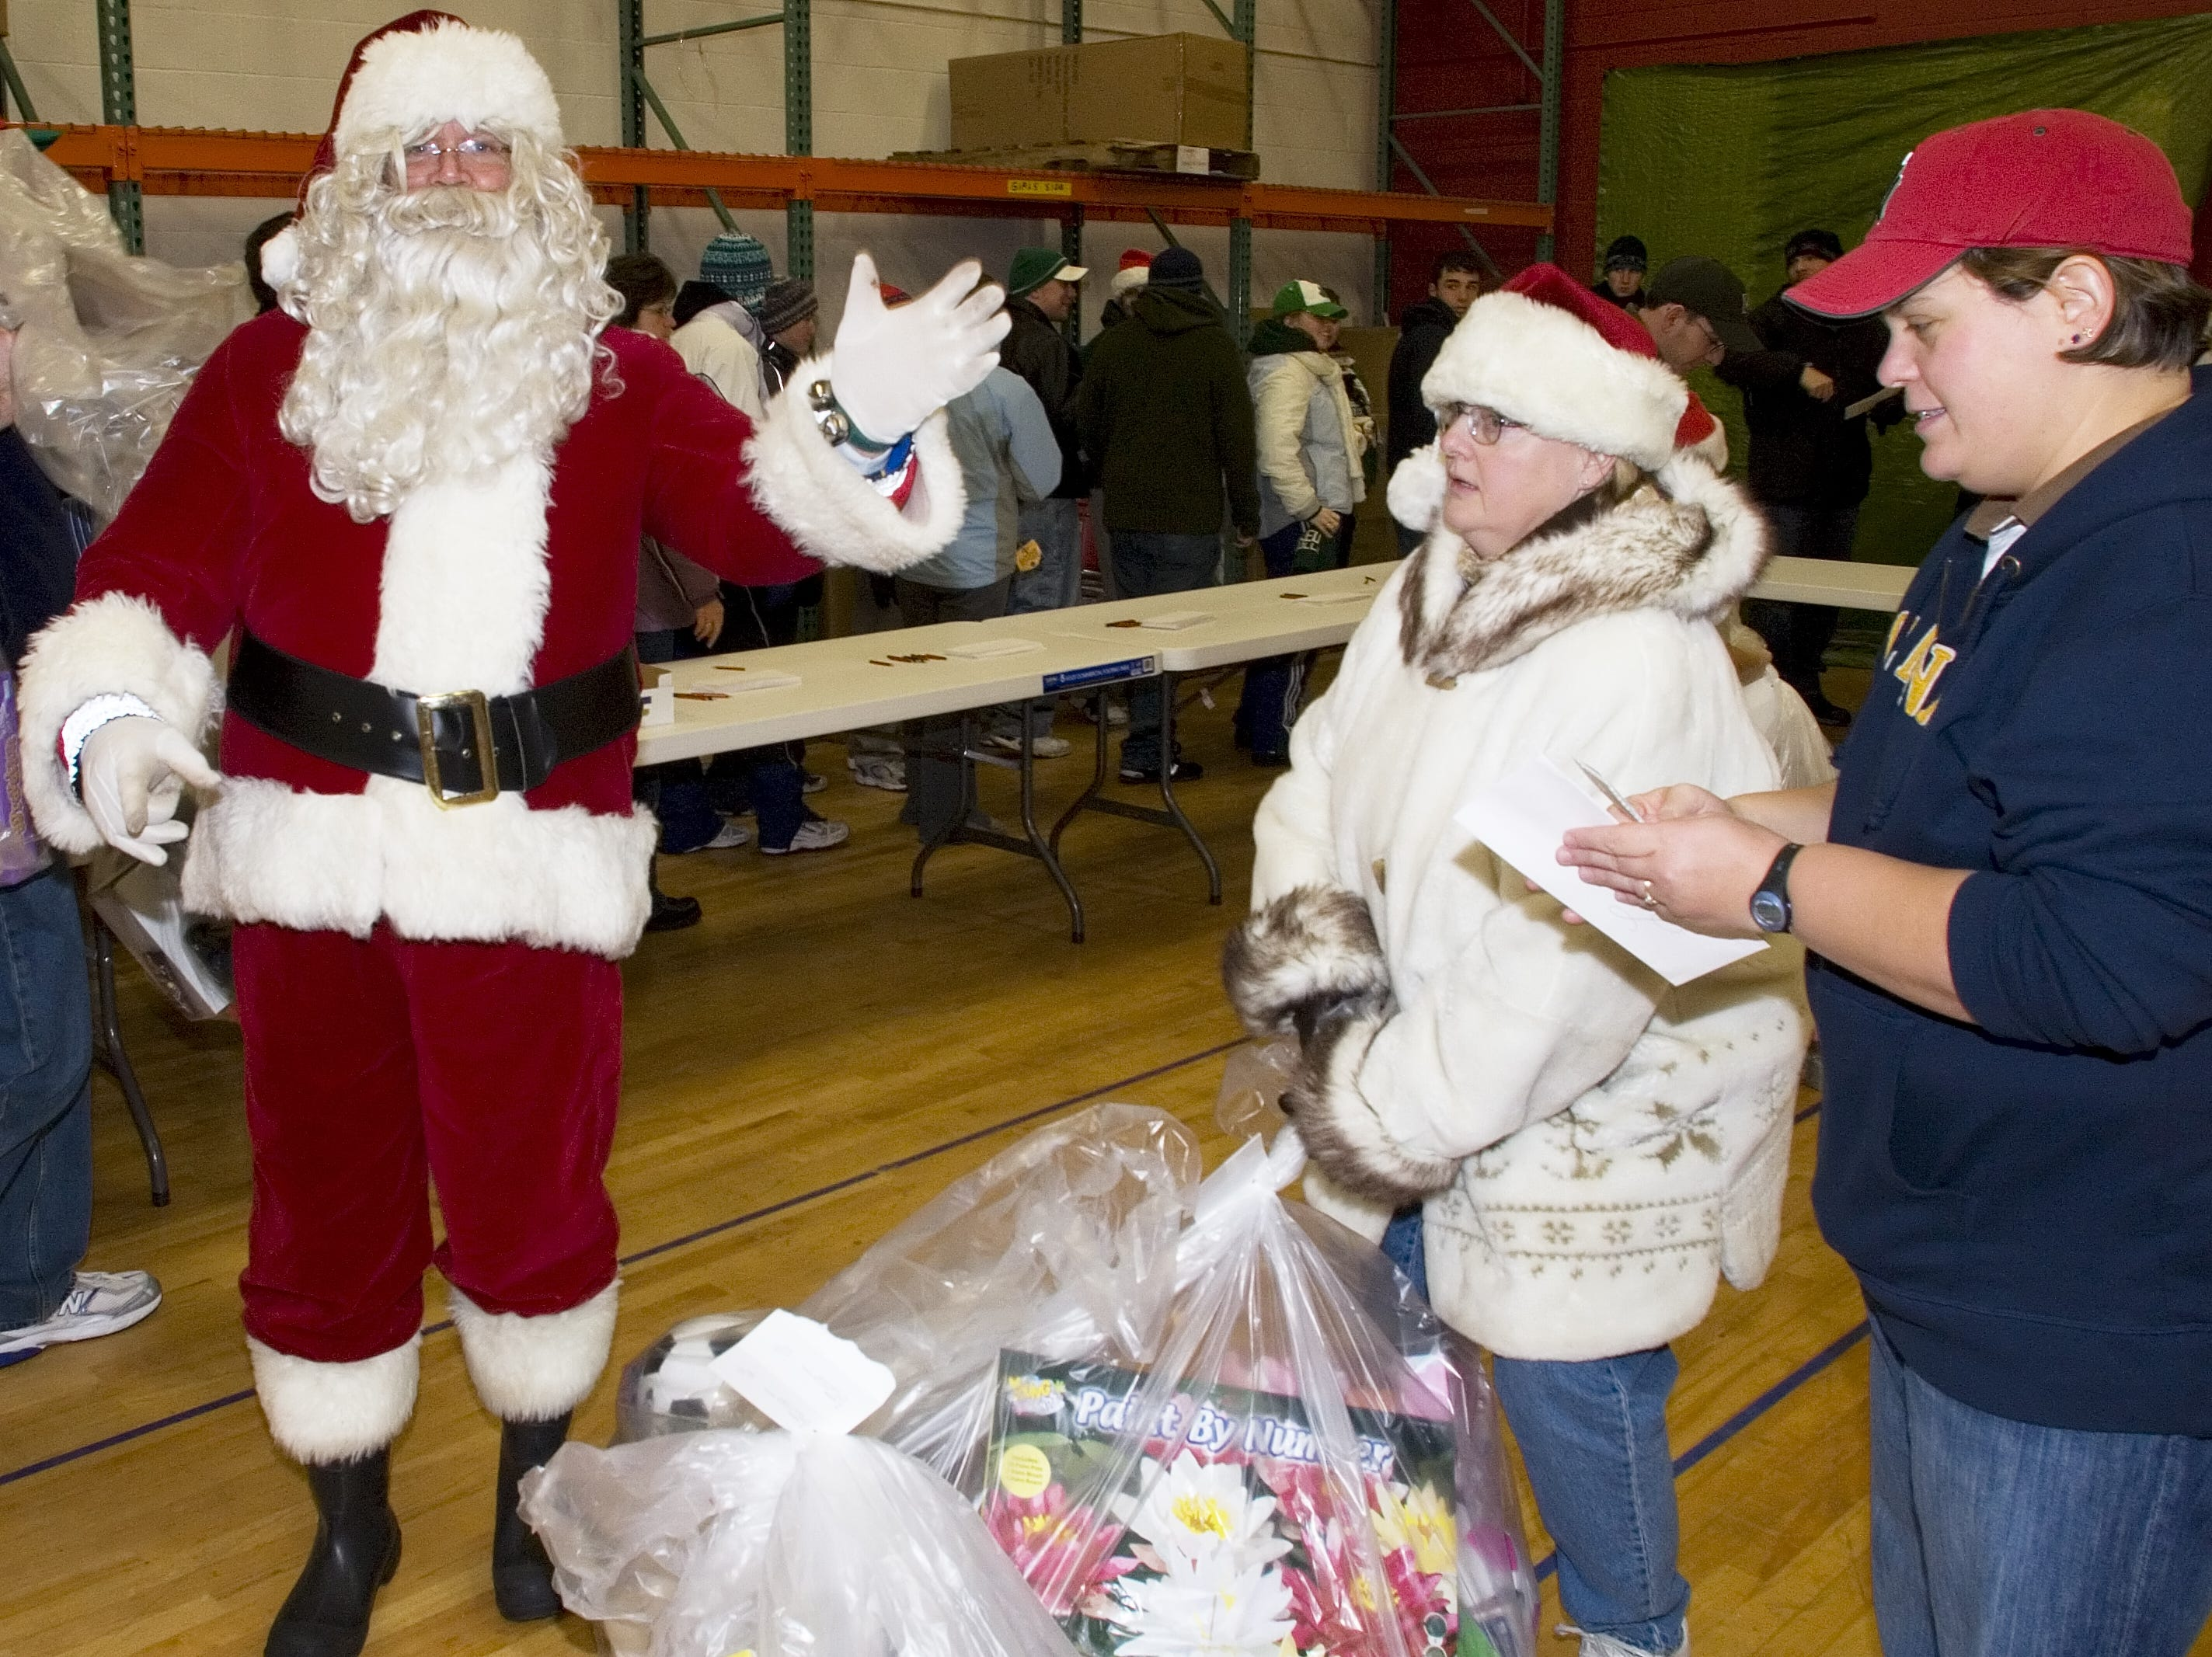 Jay Larrison of Elmira, dressed as Santa,  waves as an unidentified volunteer picks up a bag from Melissa Kalec, 36, of Elmira, right, in 2007.